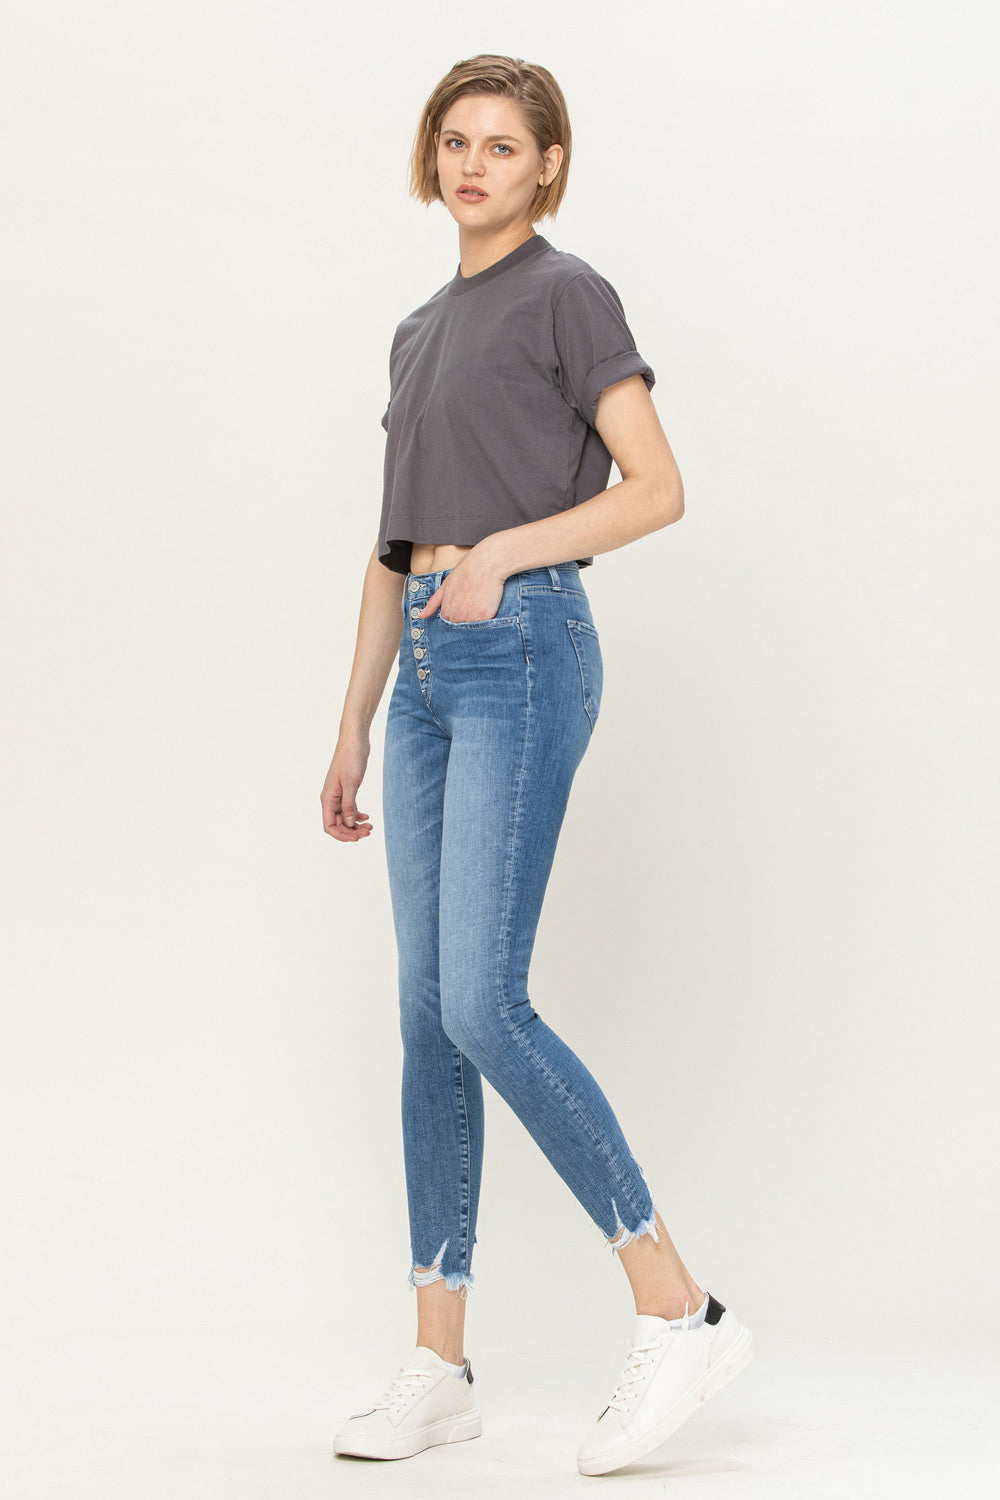 Y3642 - mid rise button up distressed hem crop skinny - sweet love